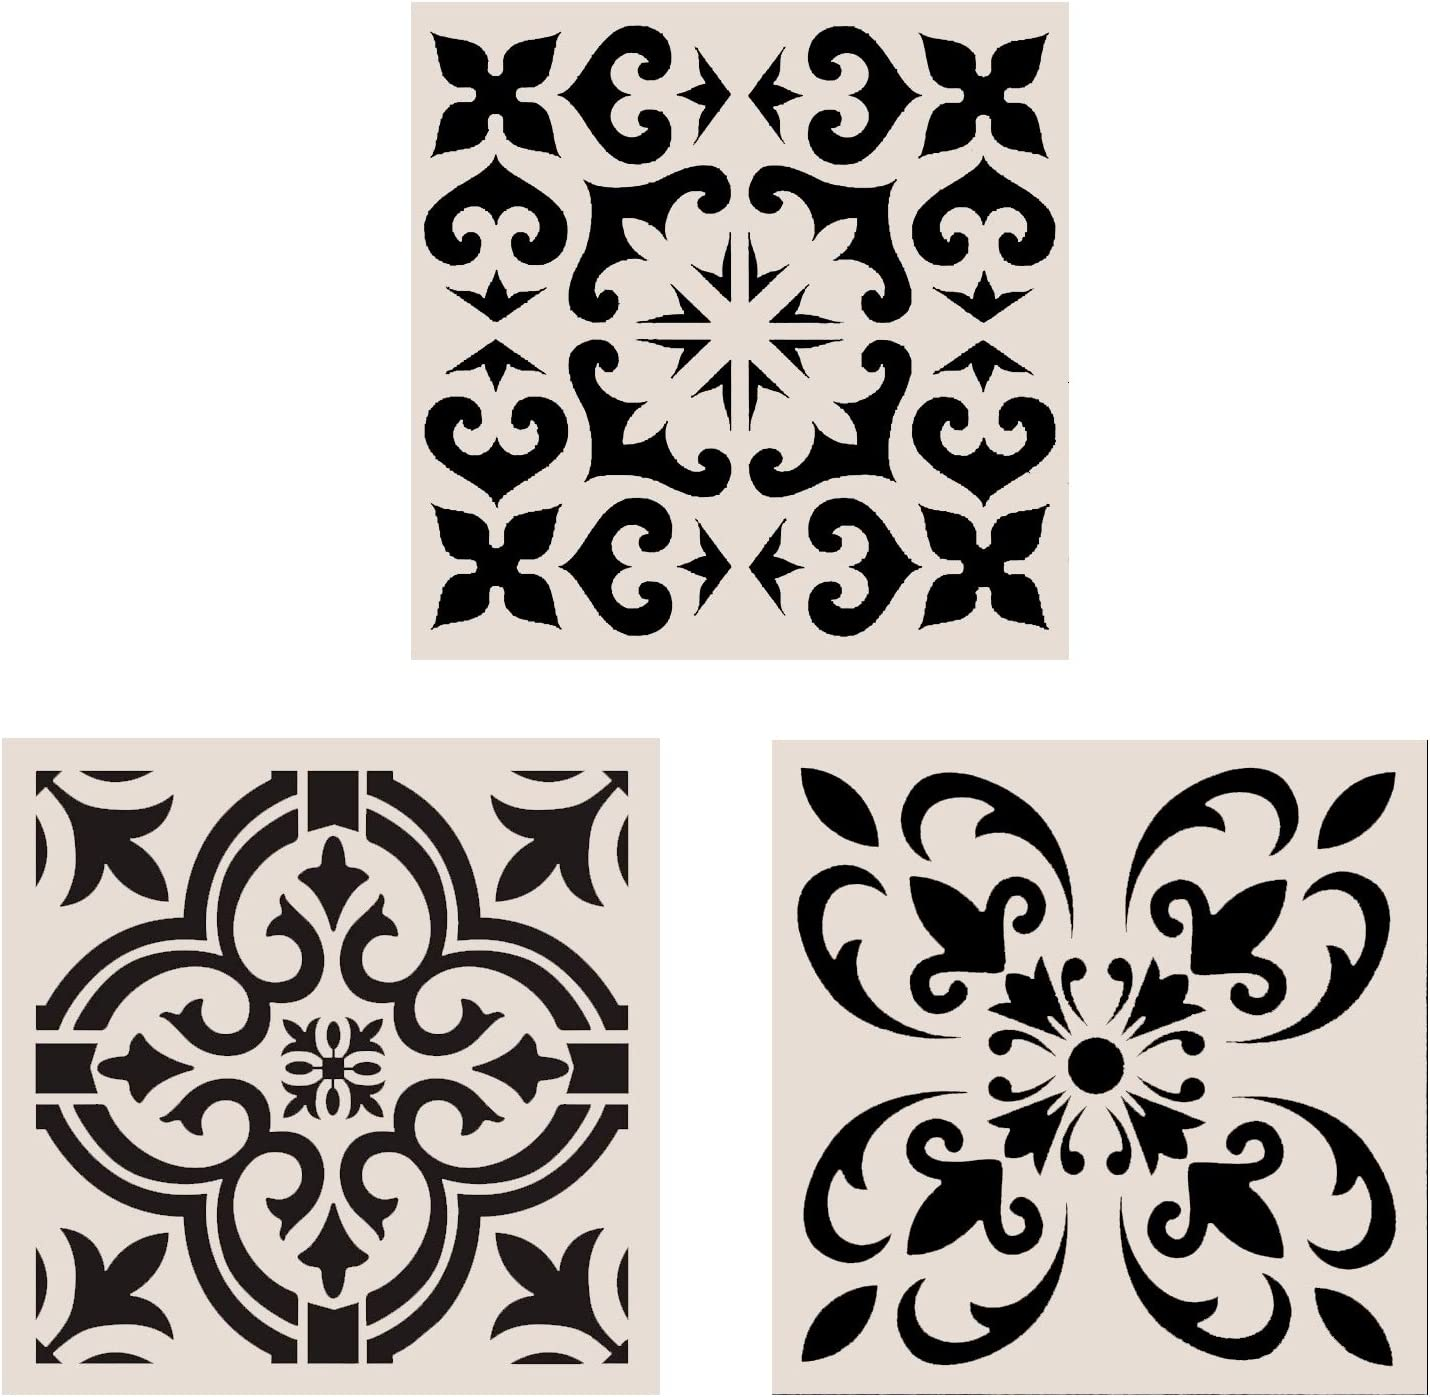 Lindin 3PCS Tile Stencil 12x12 Inch - Large Stencils Painting for Floor Wall Furniture Fabric Wood - Reusable Art Mandala Stencils Painting (Style 2)